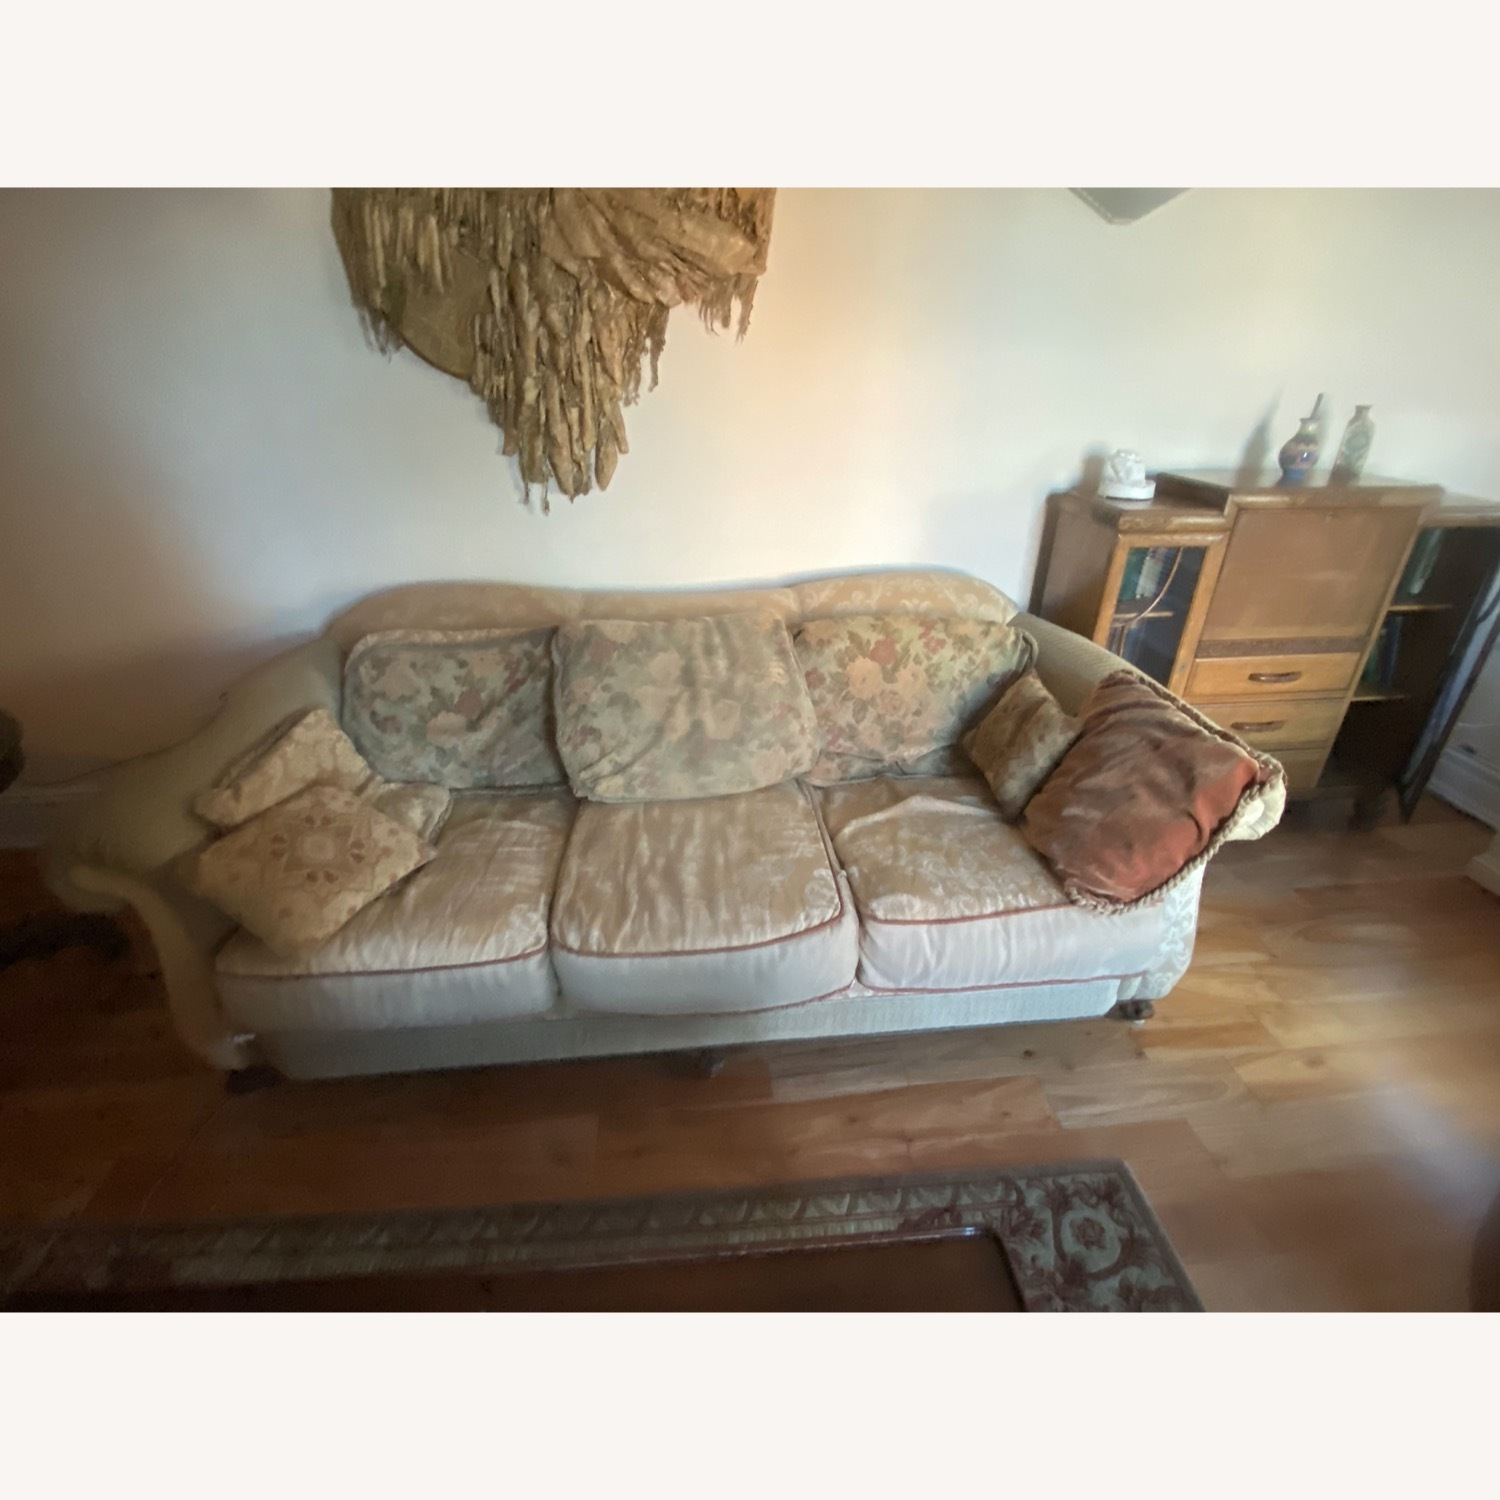 Domain Ornate Super Comfortable Couch Art Deco in Style - image-1